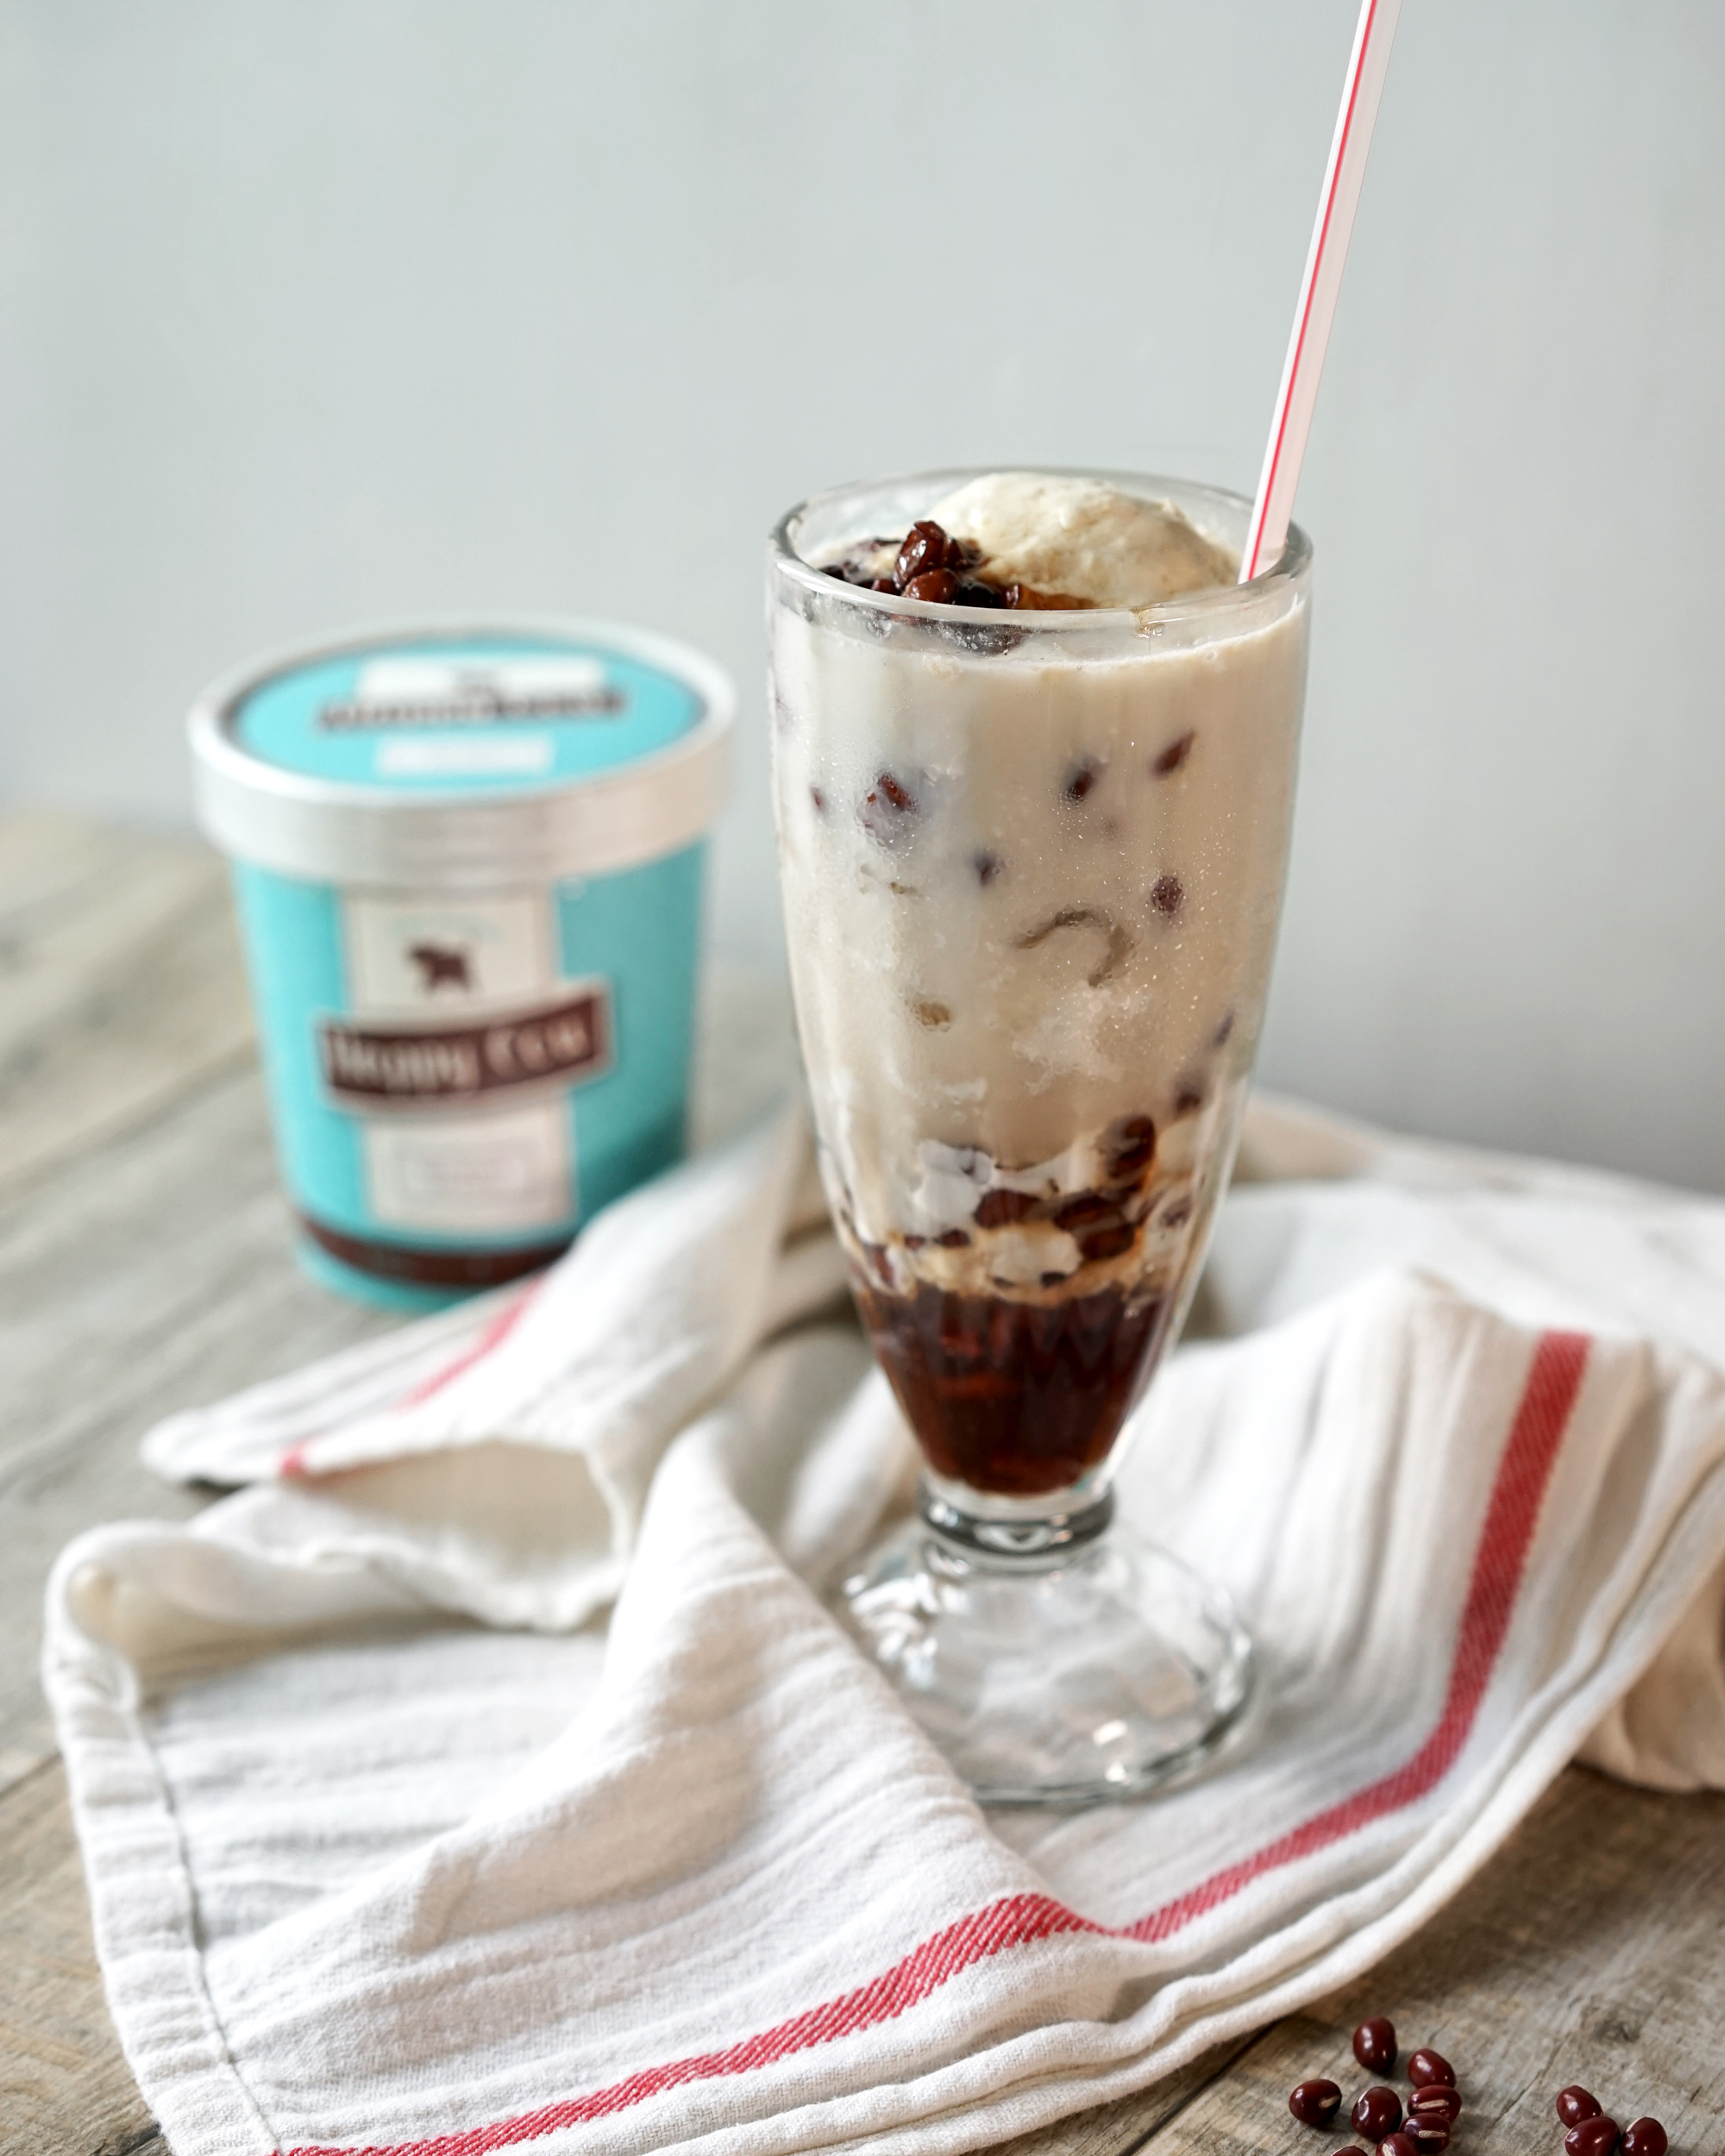 Dairy Free Red Bean Ice Recipe by Broke and Cooking - www.brokeandcooking.com